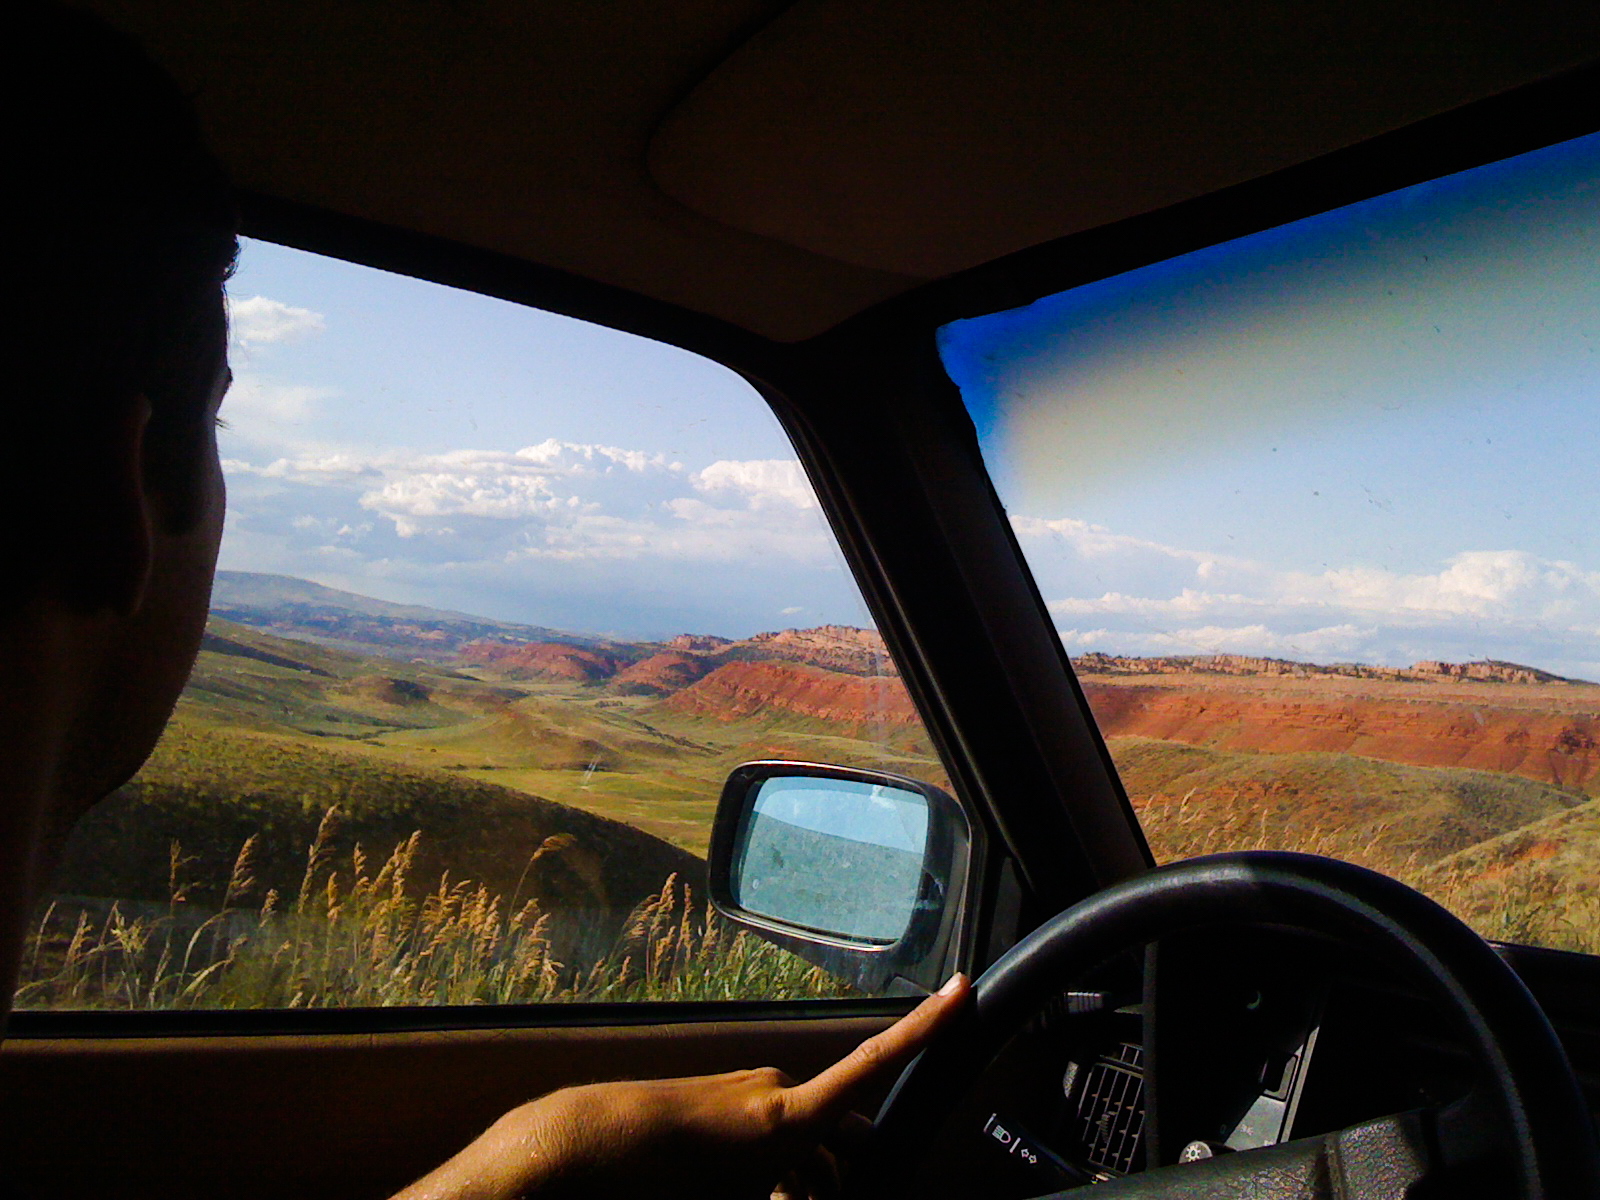 wandering_study_adventure_videographer_wyoming_red_canyon_road_trip